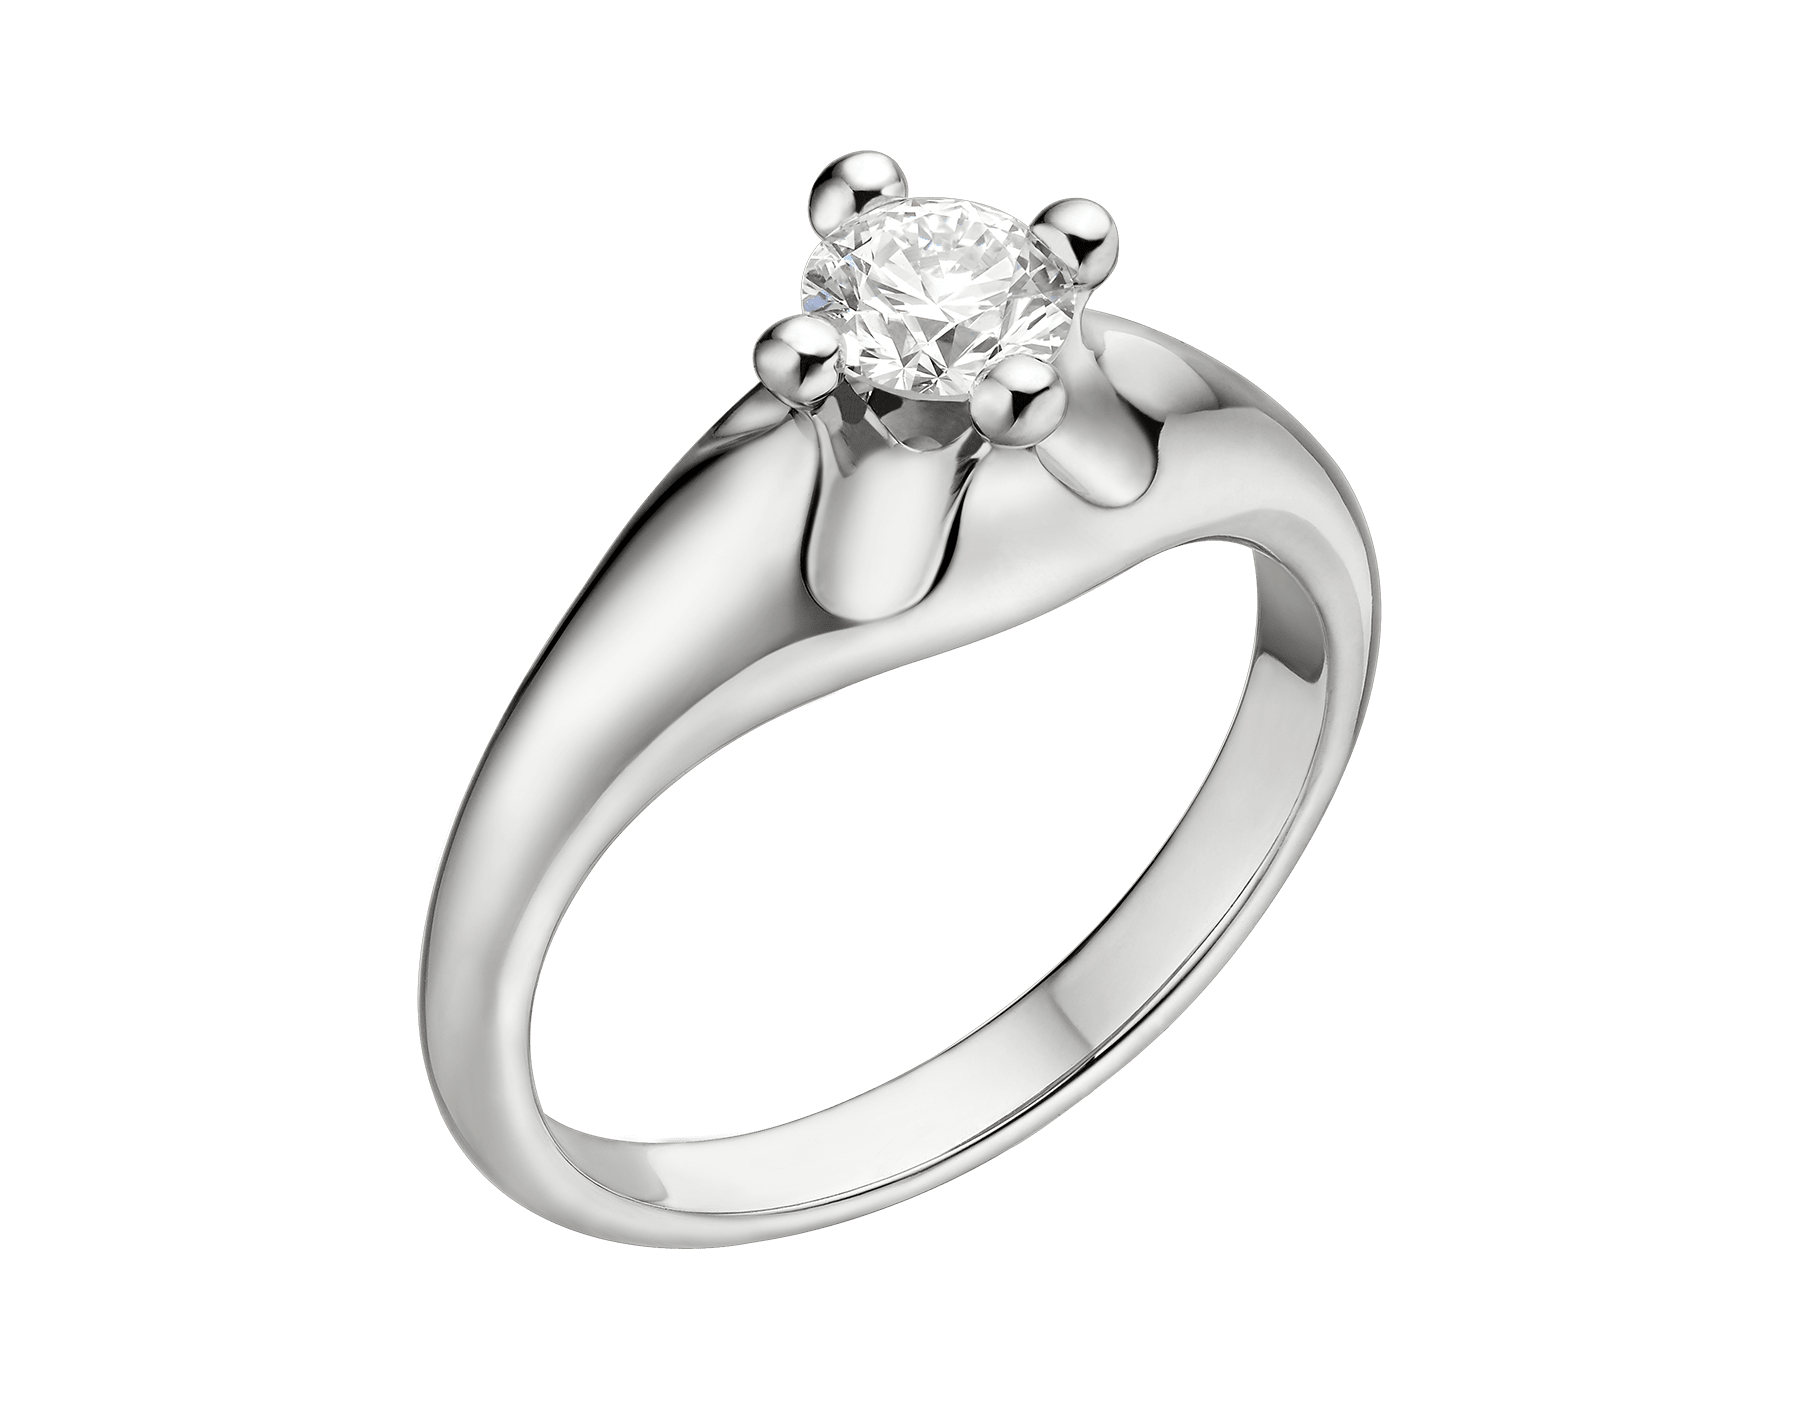 Corona solitaire ring in platinum with round brilliant cut diamond. Available from 0.30 ct. Inspired by the crown and the flower, two enduring symbols of glory and celebration since ancient times. 326294 image 2